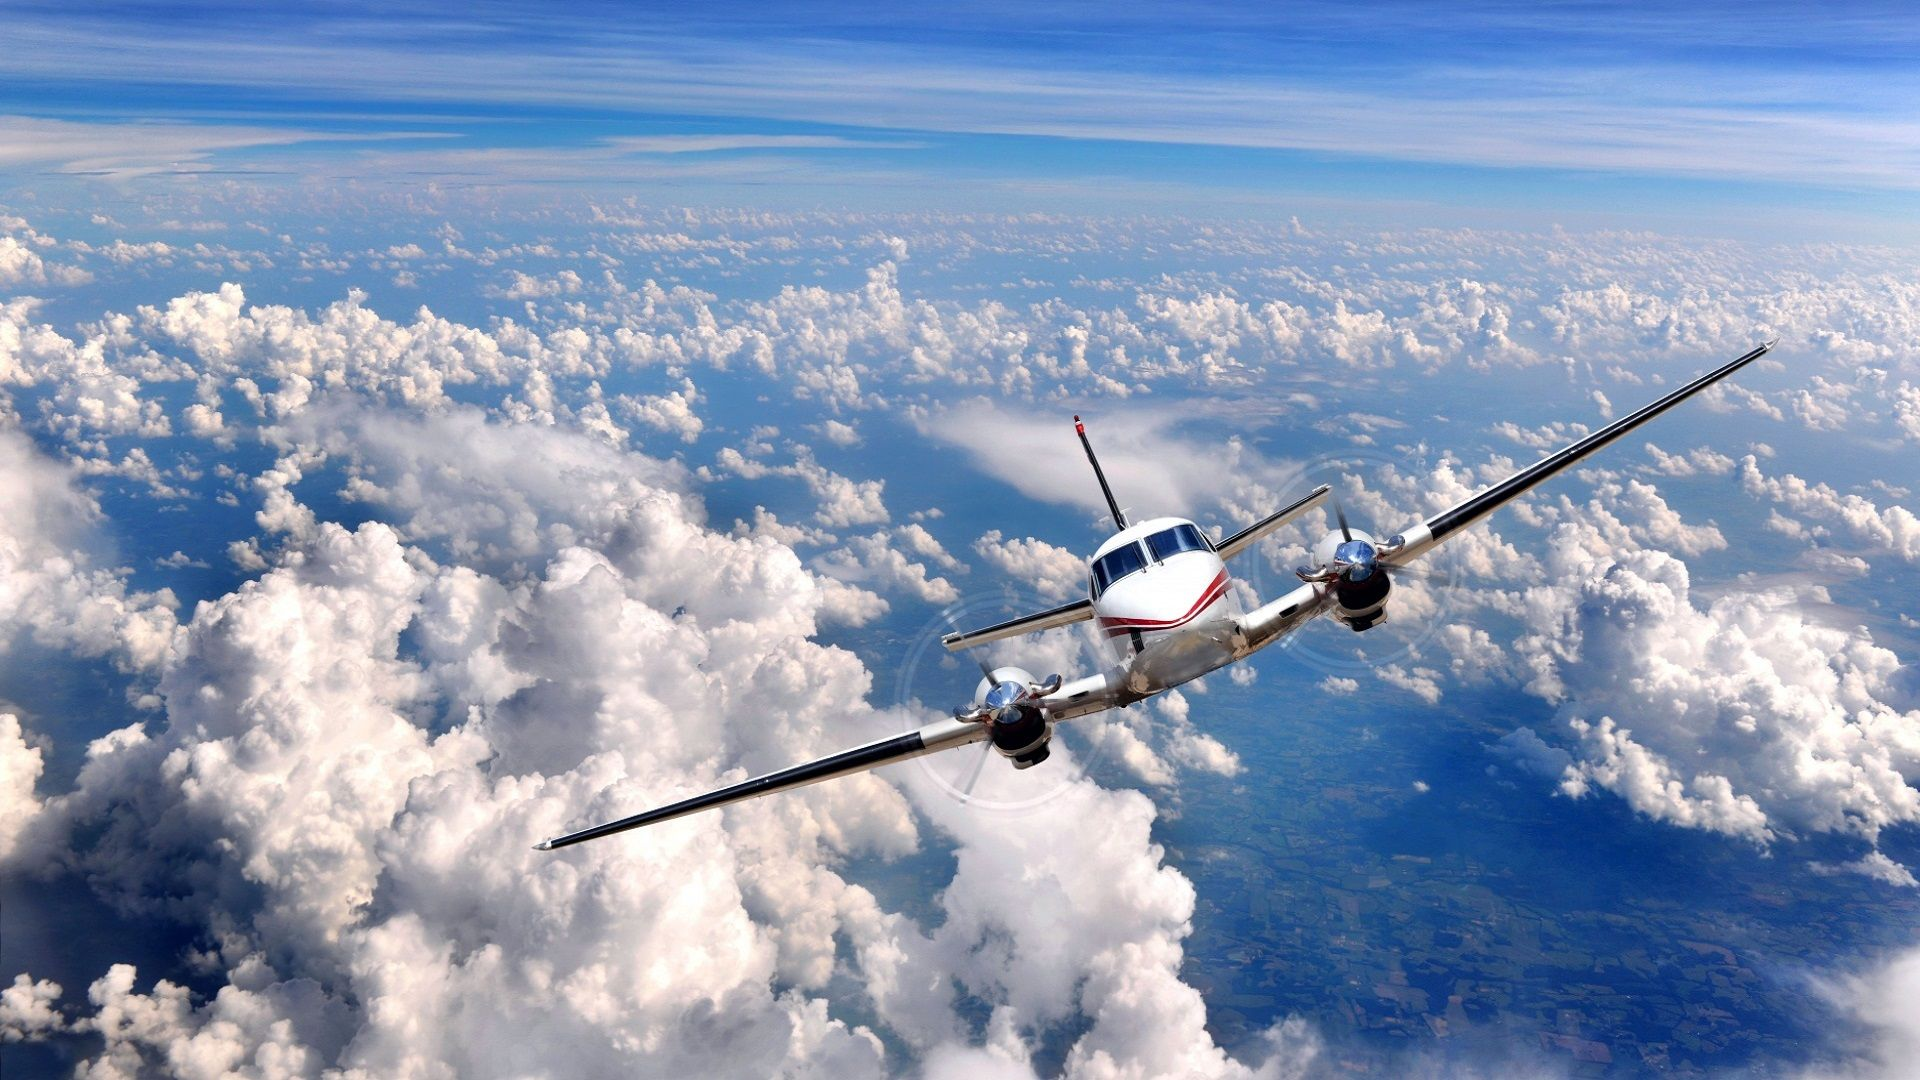 Aircraft In Flight HD Wallpaper For Standard